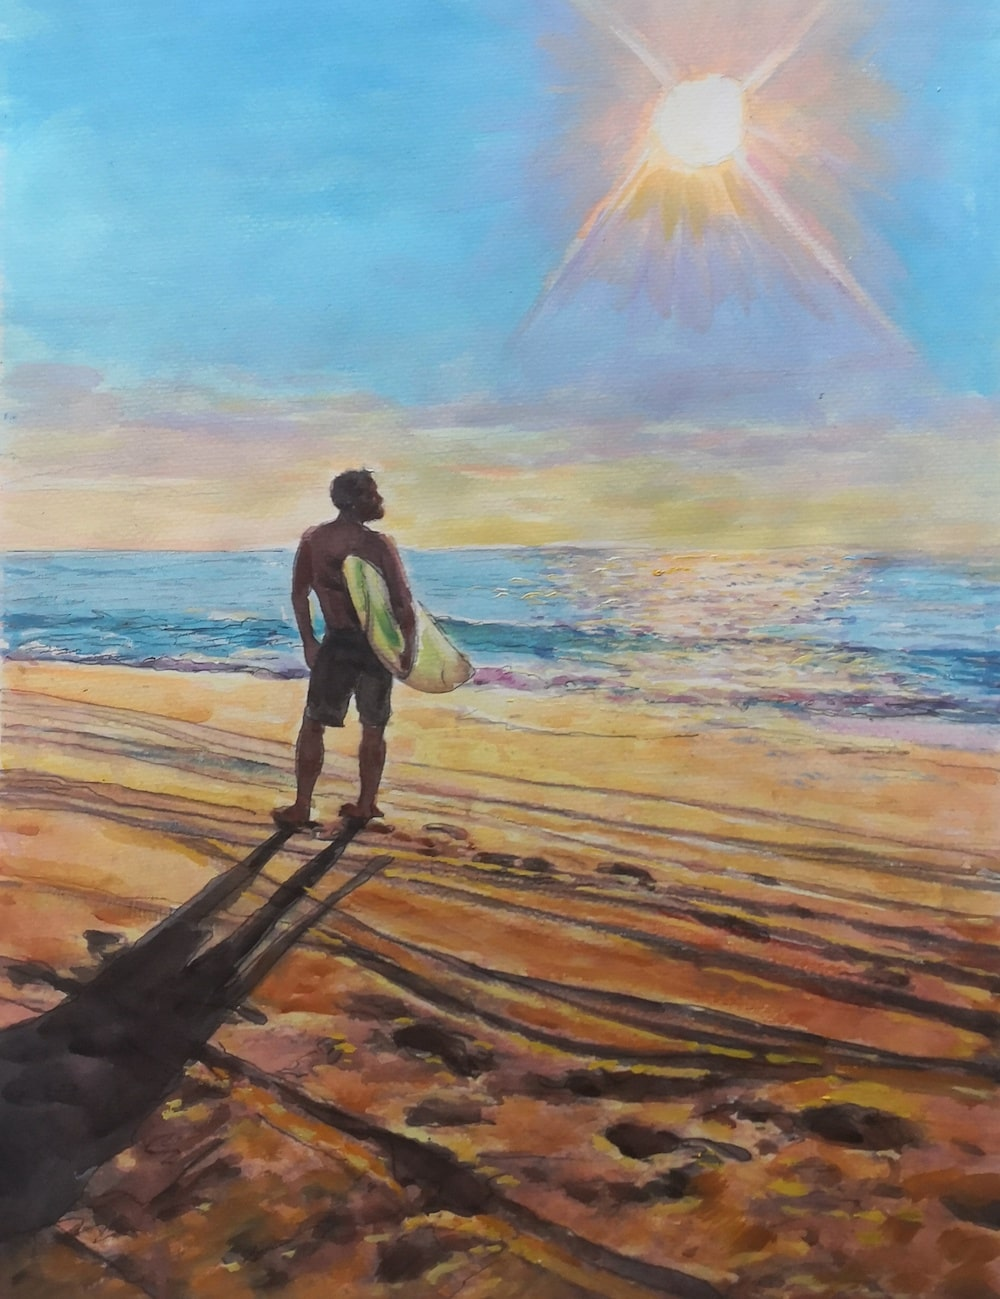 1291-guy-on-beach-photo-to-watercolor-painting